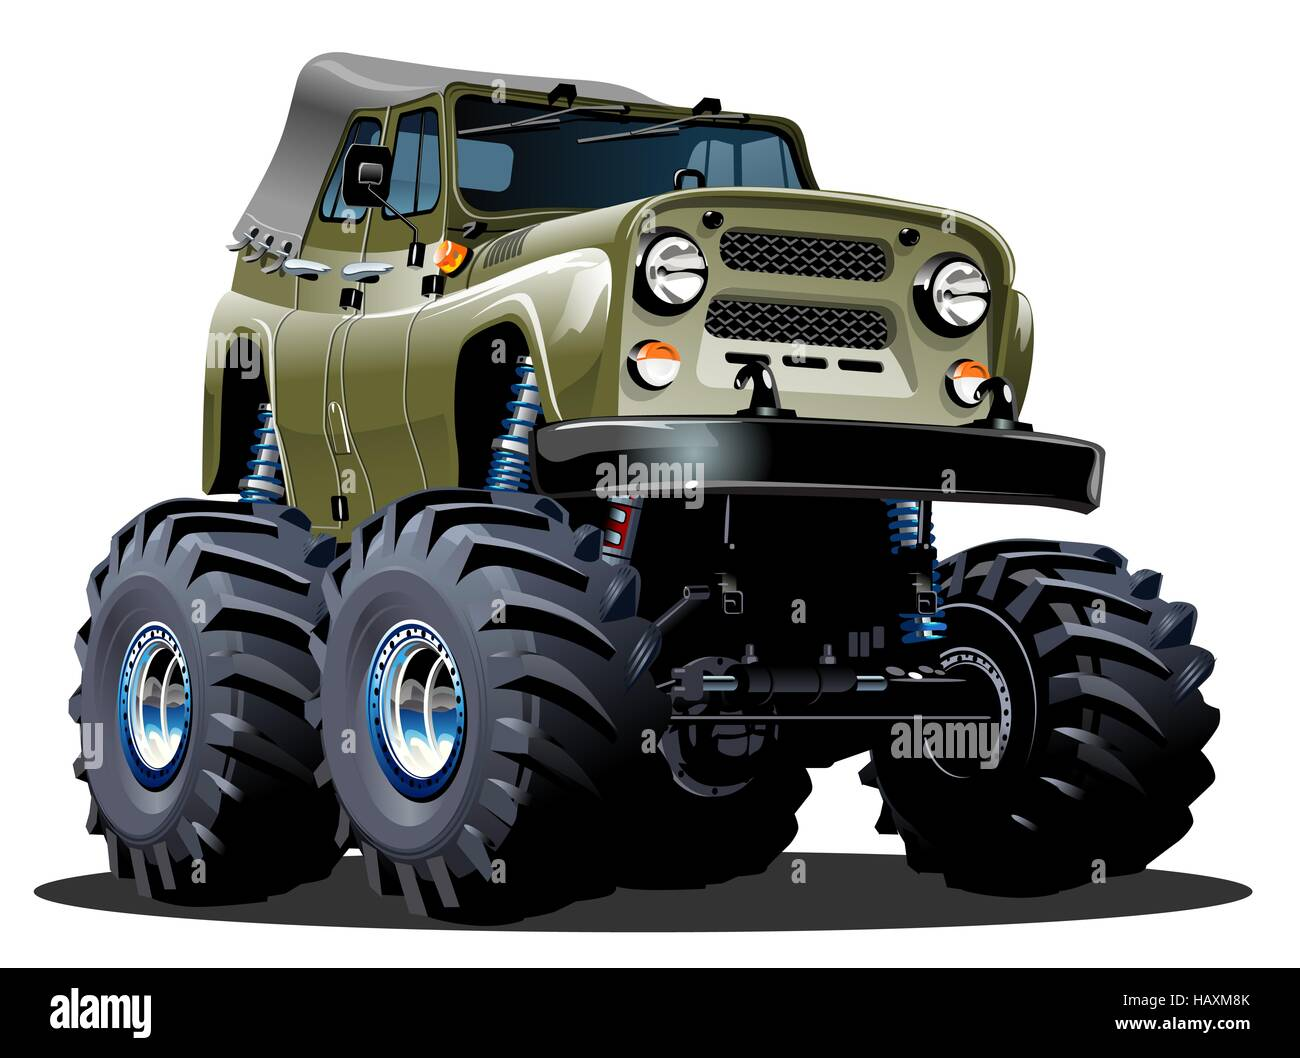 Cartoon Jeep Stockfotos & Cartoon Jeep Bilder - Seite 2 - Alamy